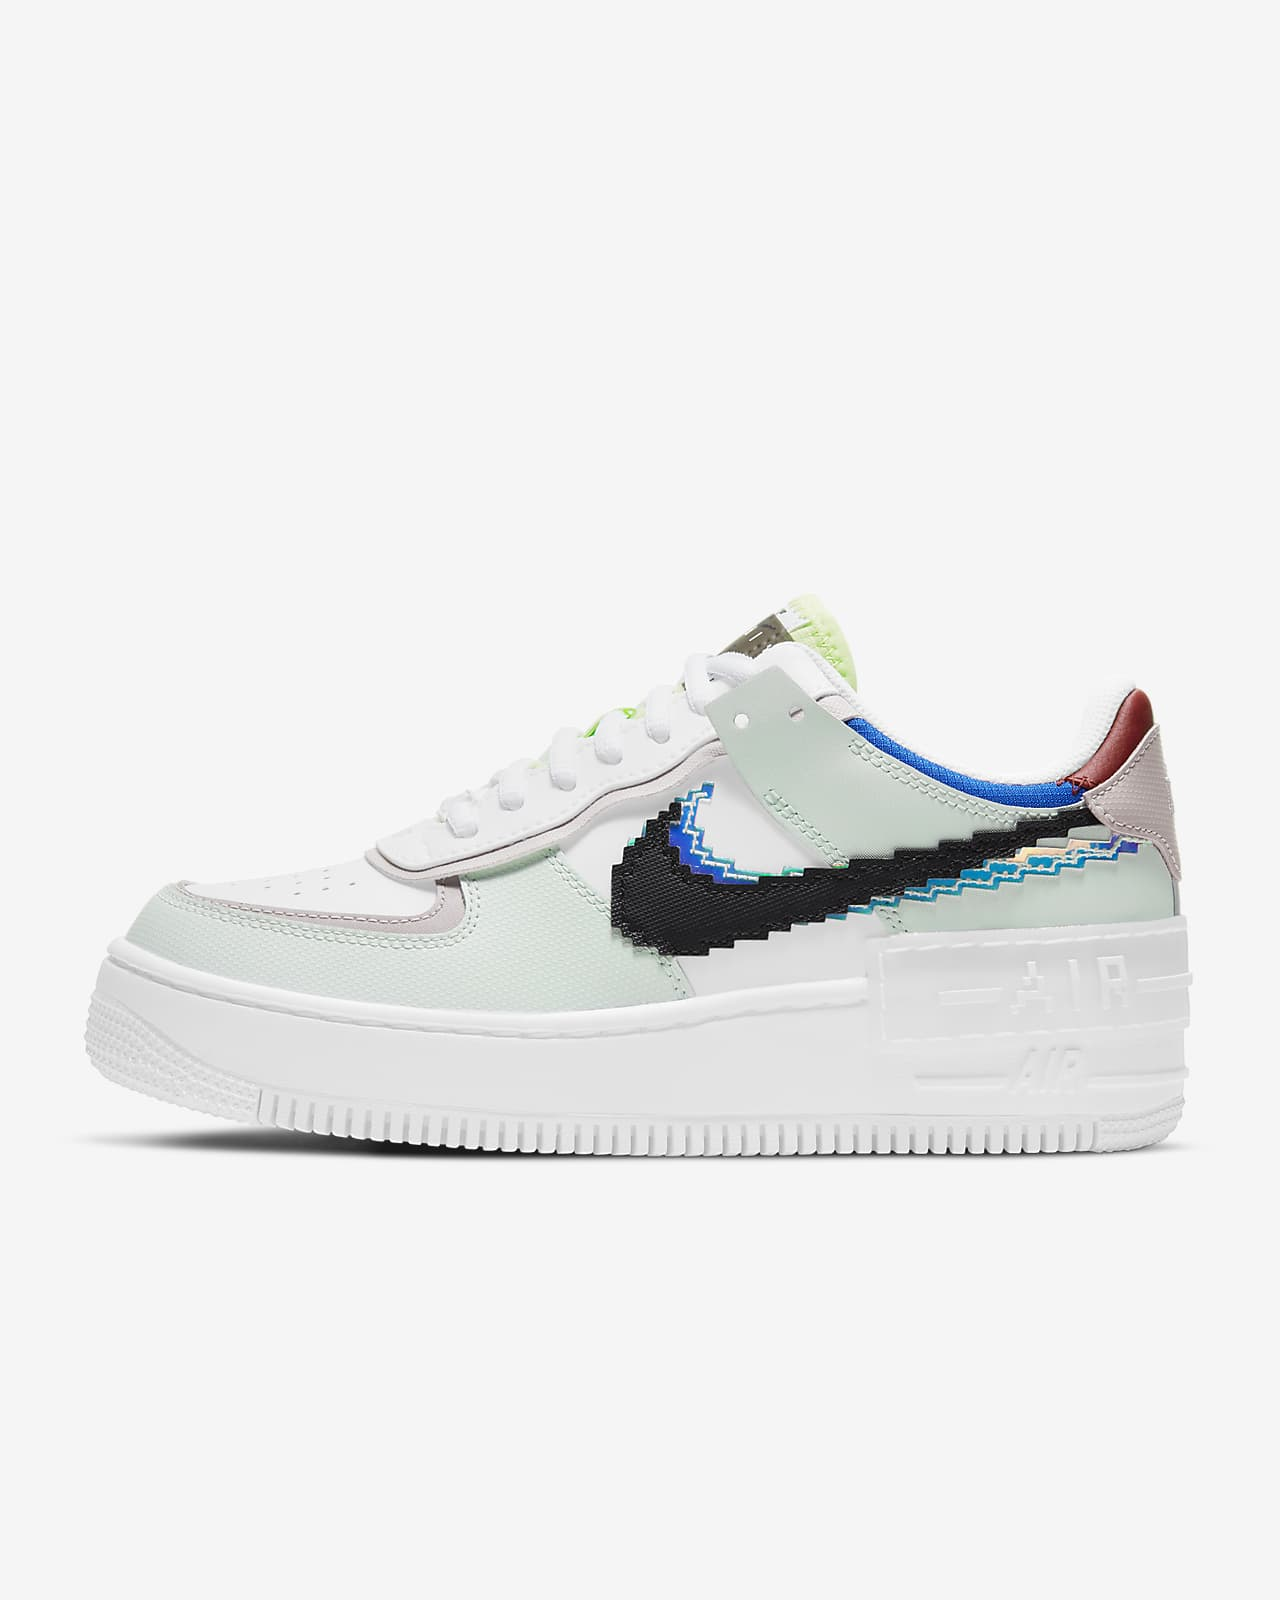 Nike Air Force 1 Shadow SE Women's Shoe